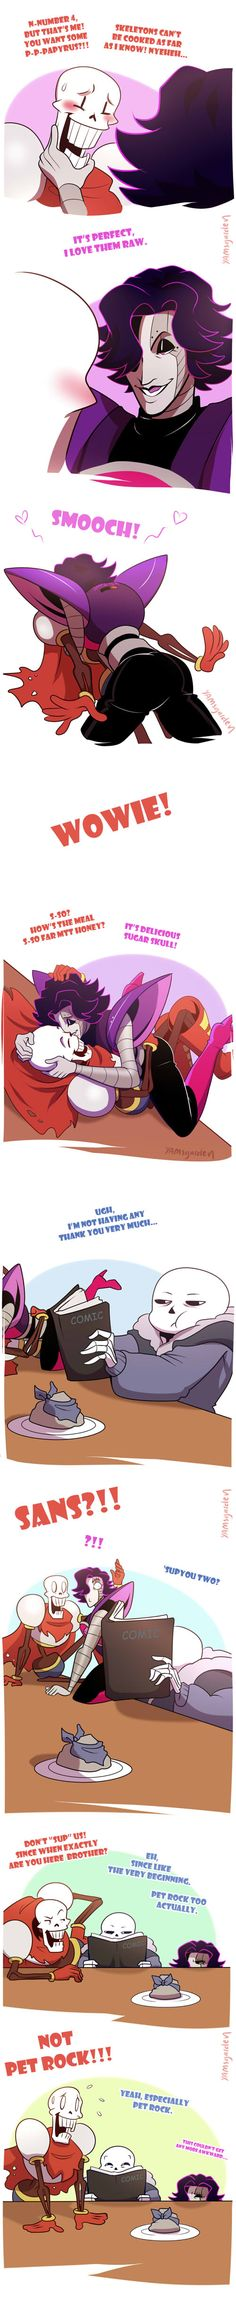 Papyrus on the menu Part 2 by YAMsgarden on DeviantArt